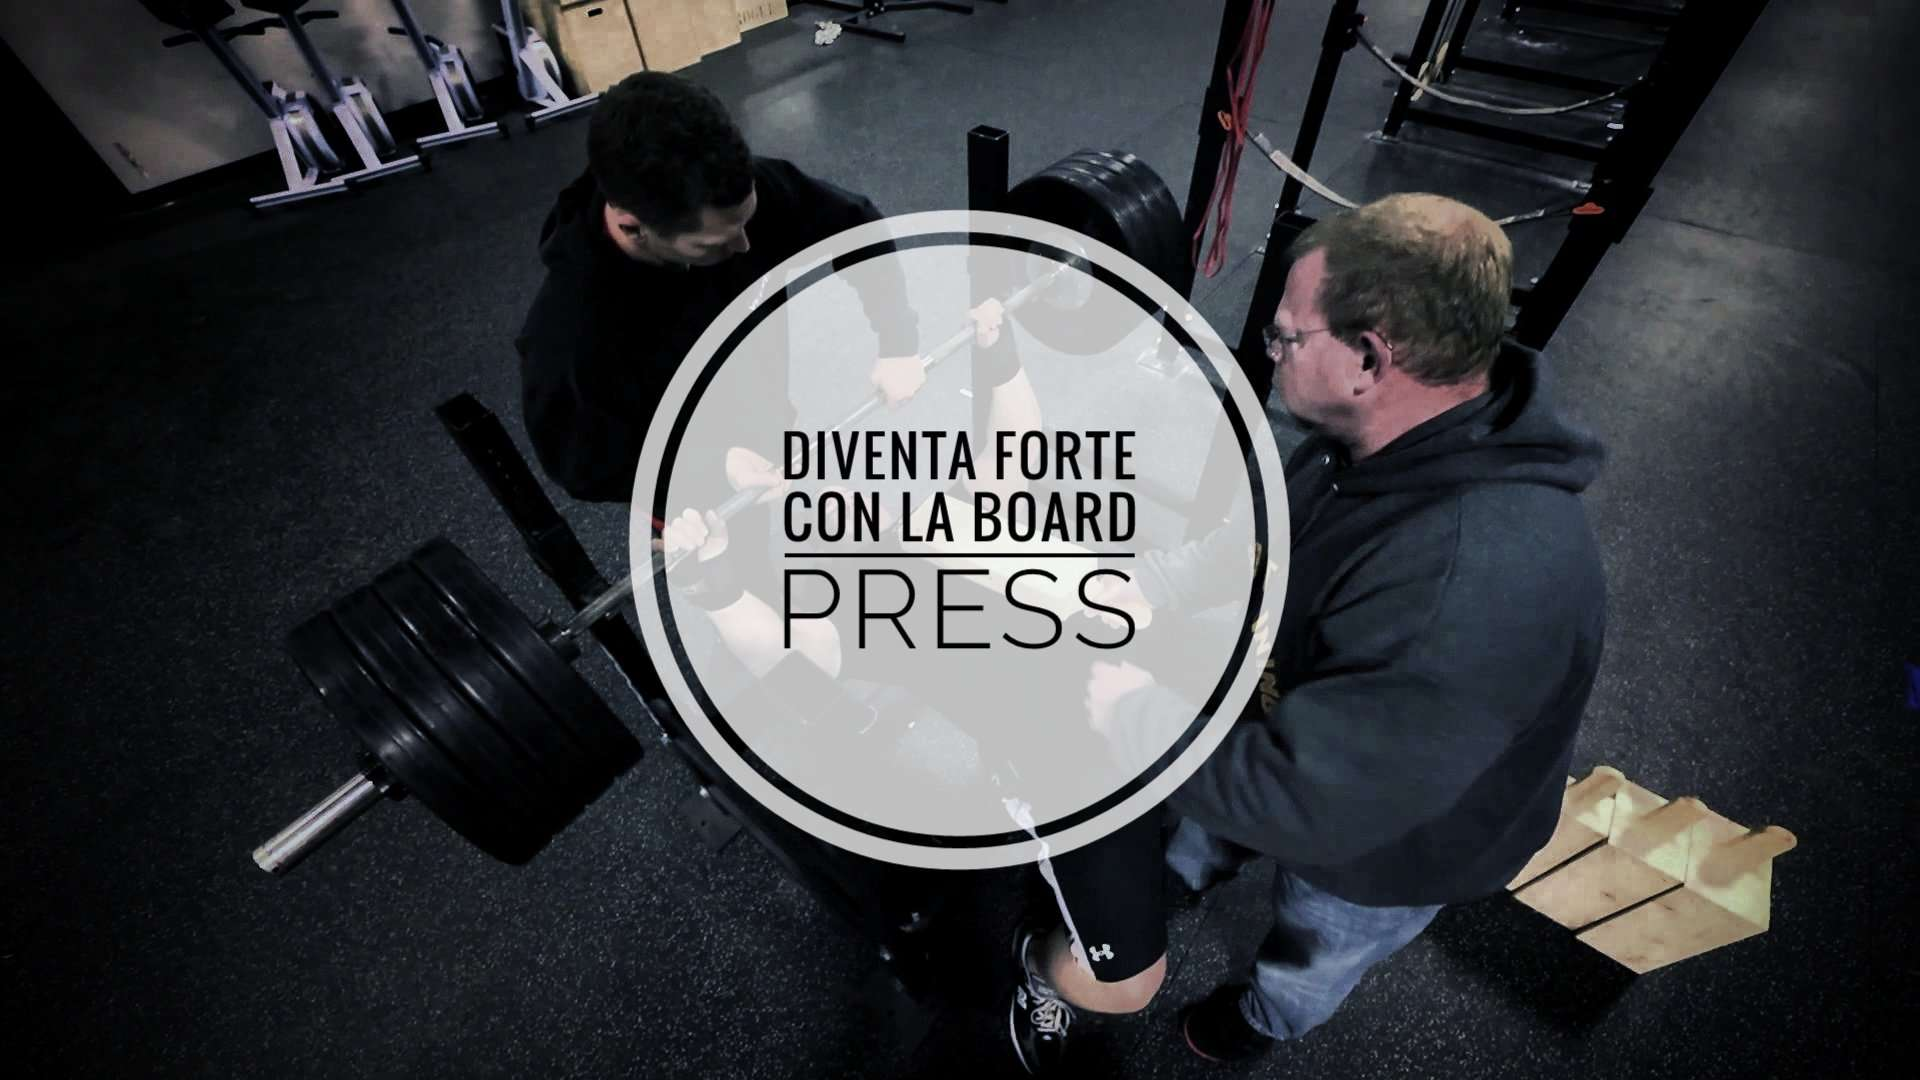 Board Press (per i deboli in Panca Piana)